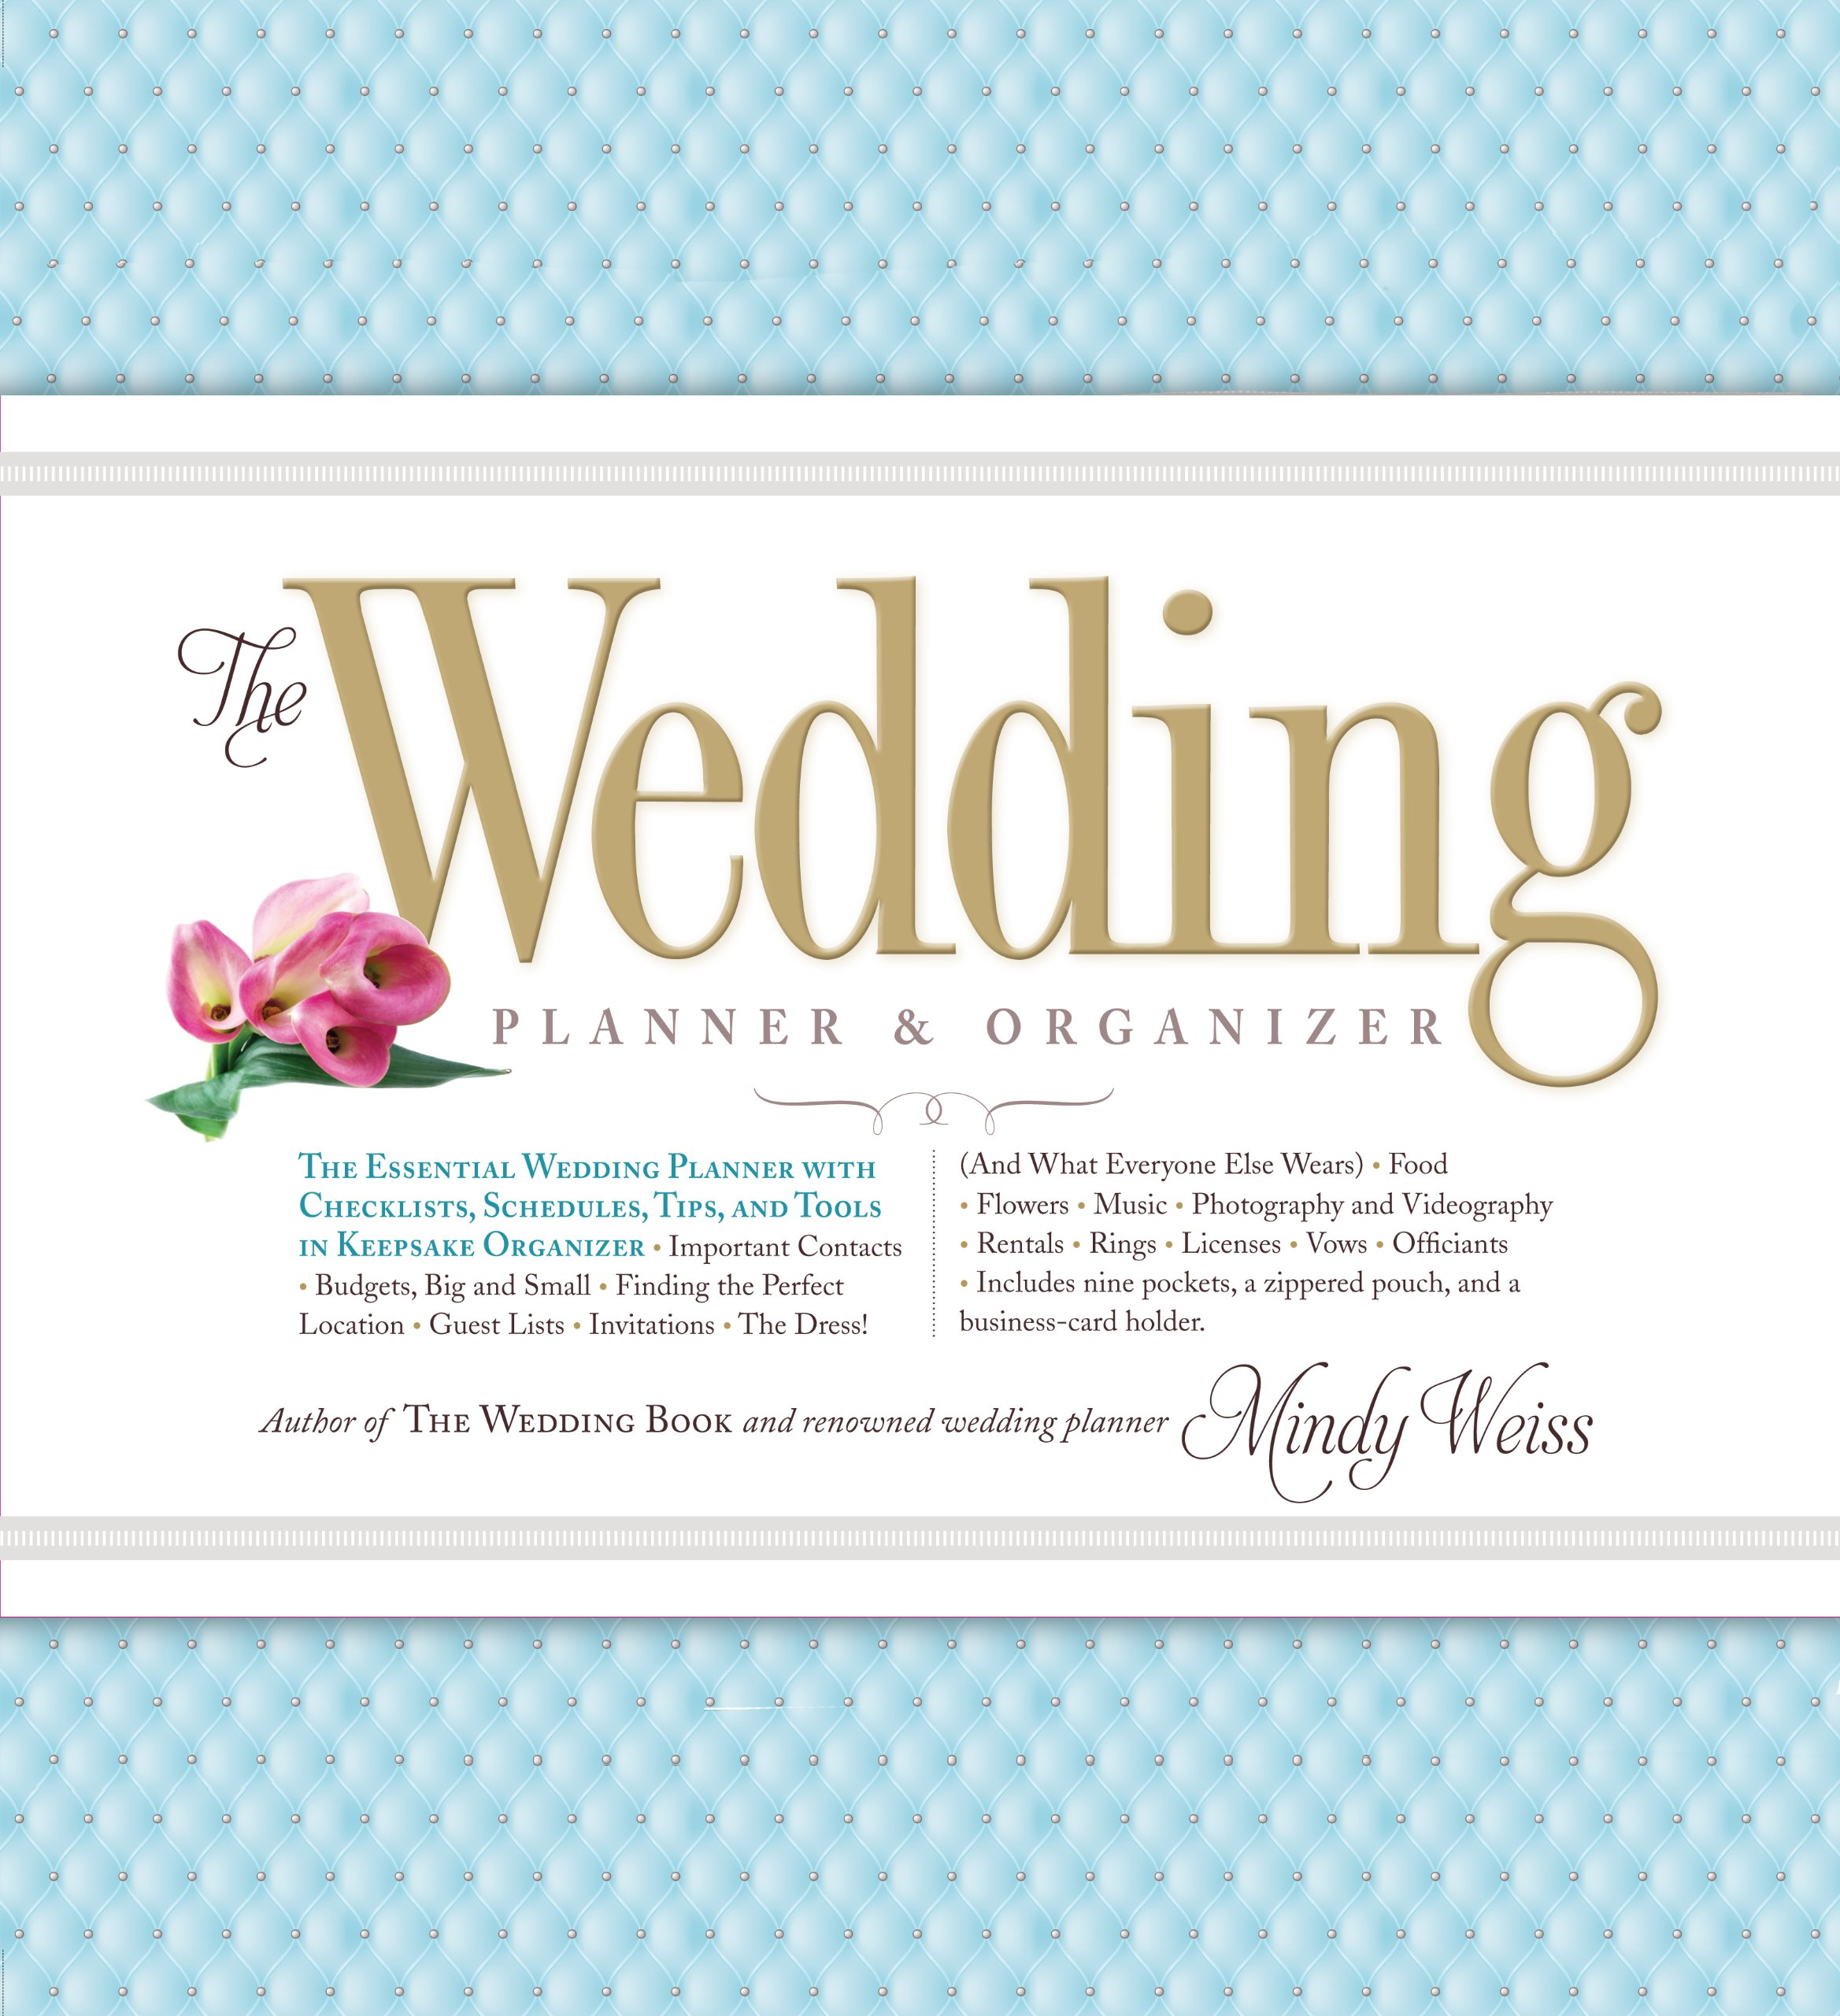 The Wedding Planner Organizer Mindy Weiss 9780761165972